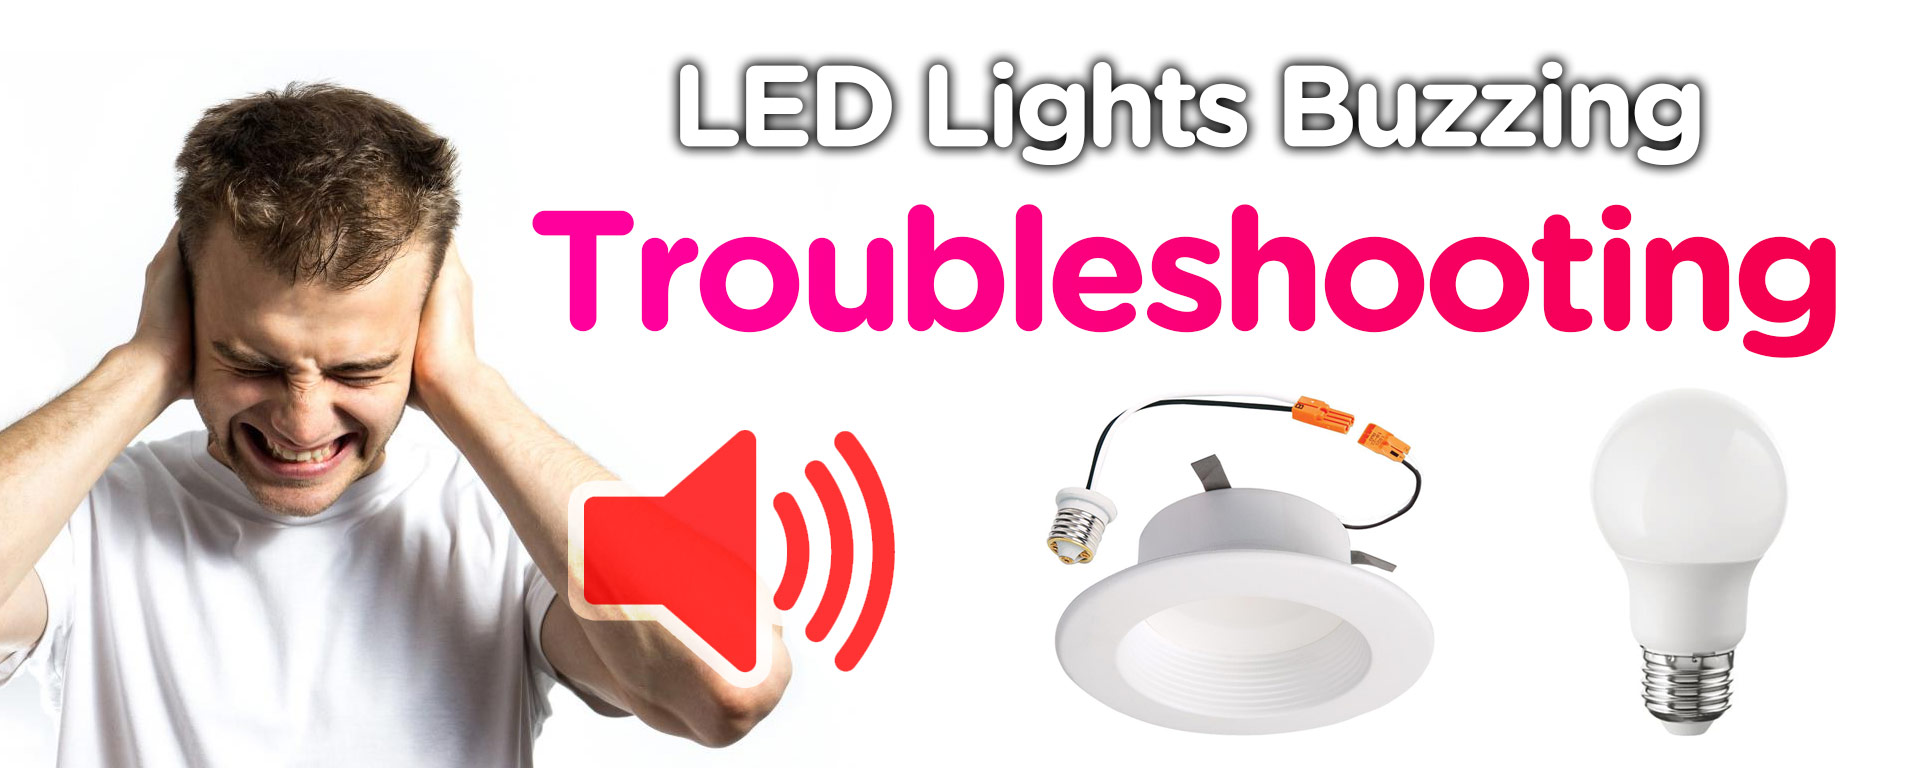 Why LED Light Buzzing? 4 Reasons and Ways to Fix